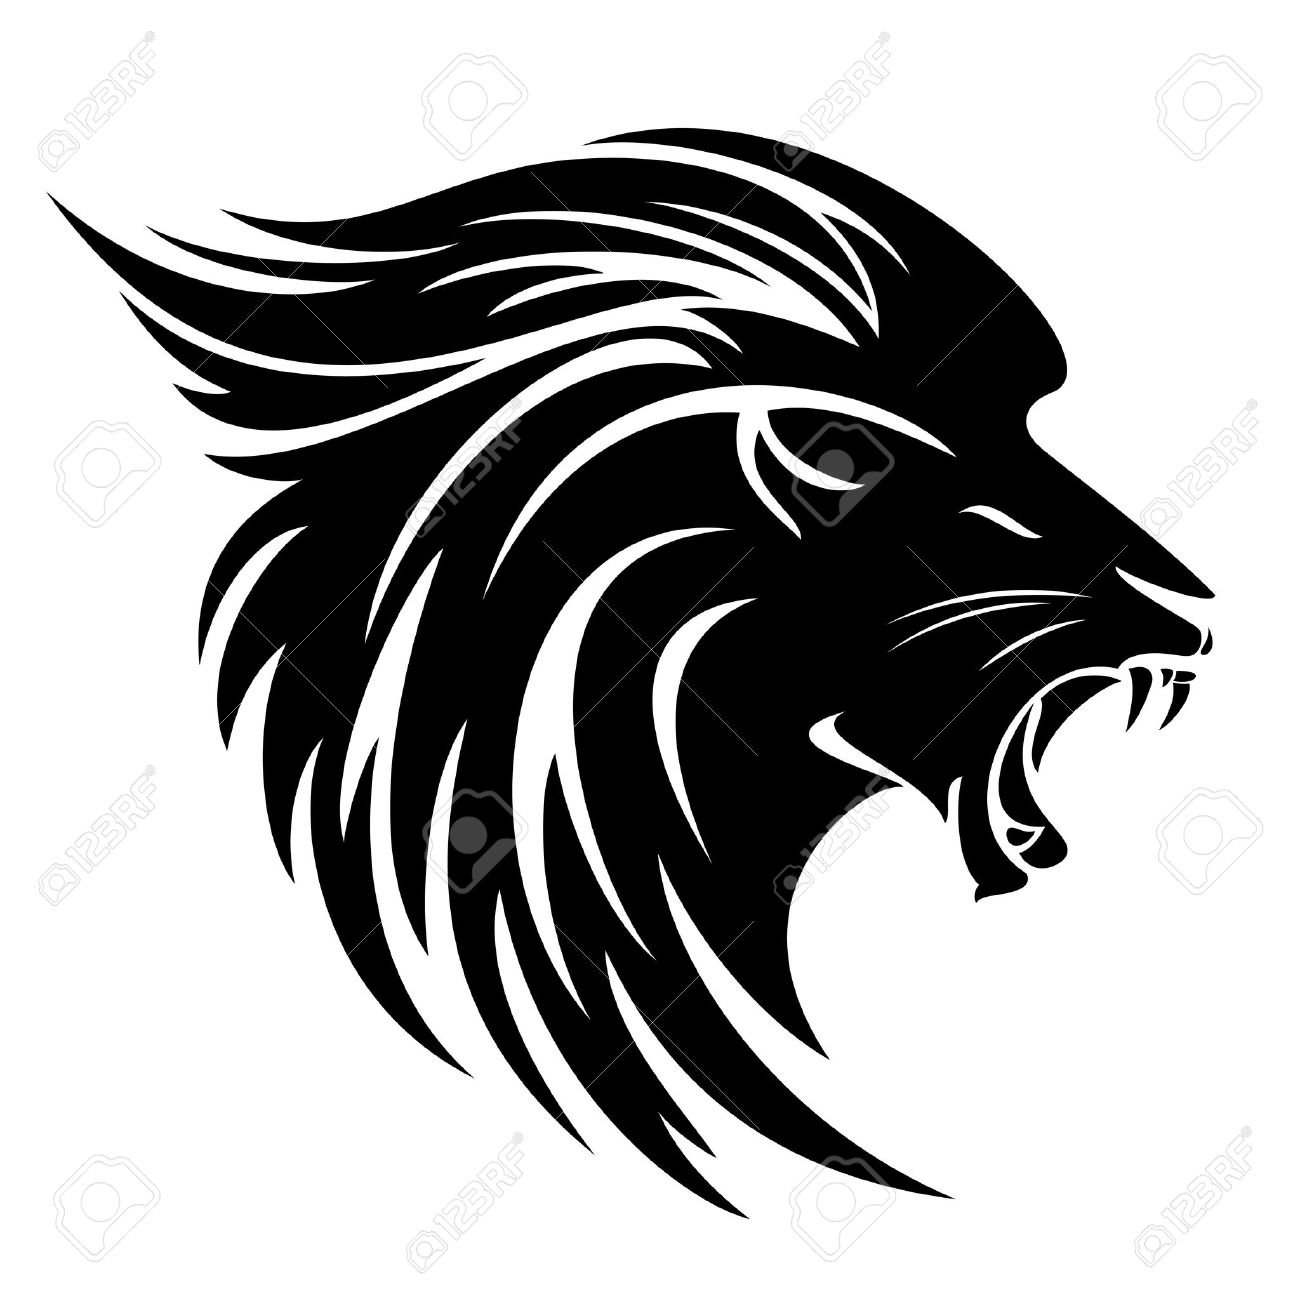 Lion head side view tribal design - black and white vector animal - 73235757